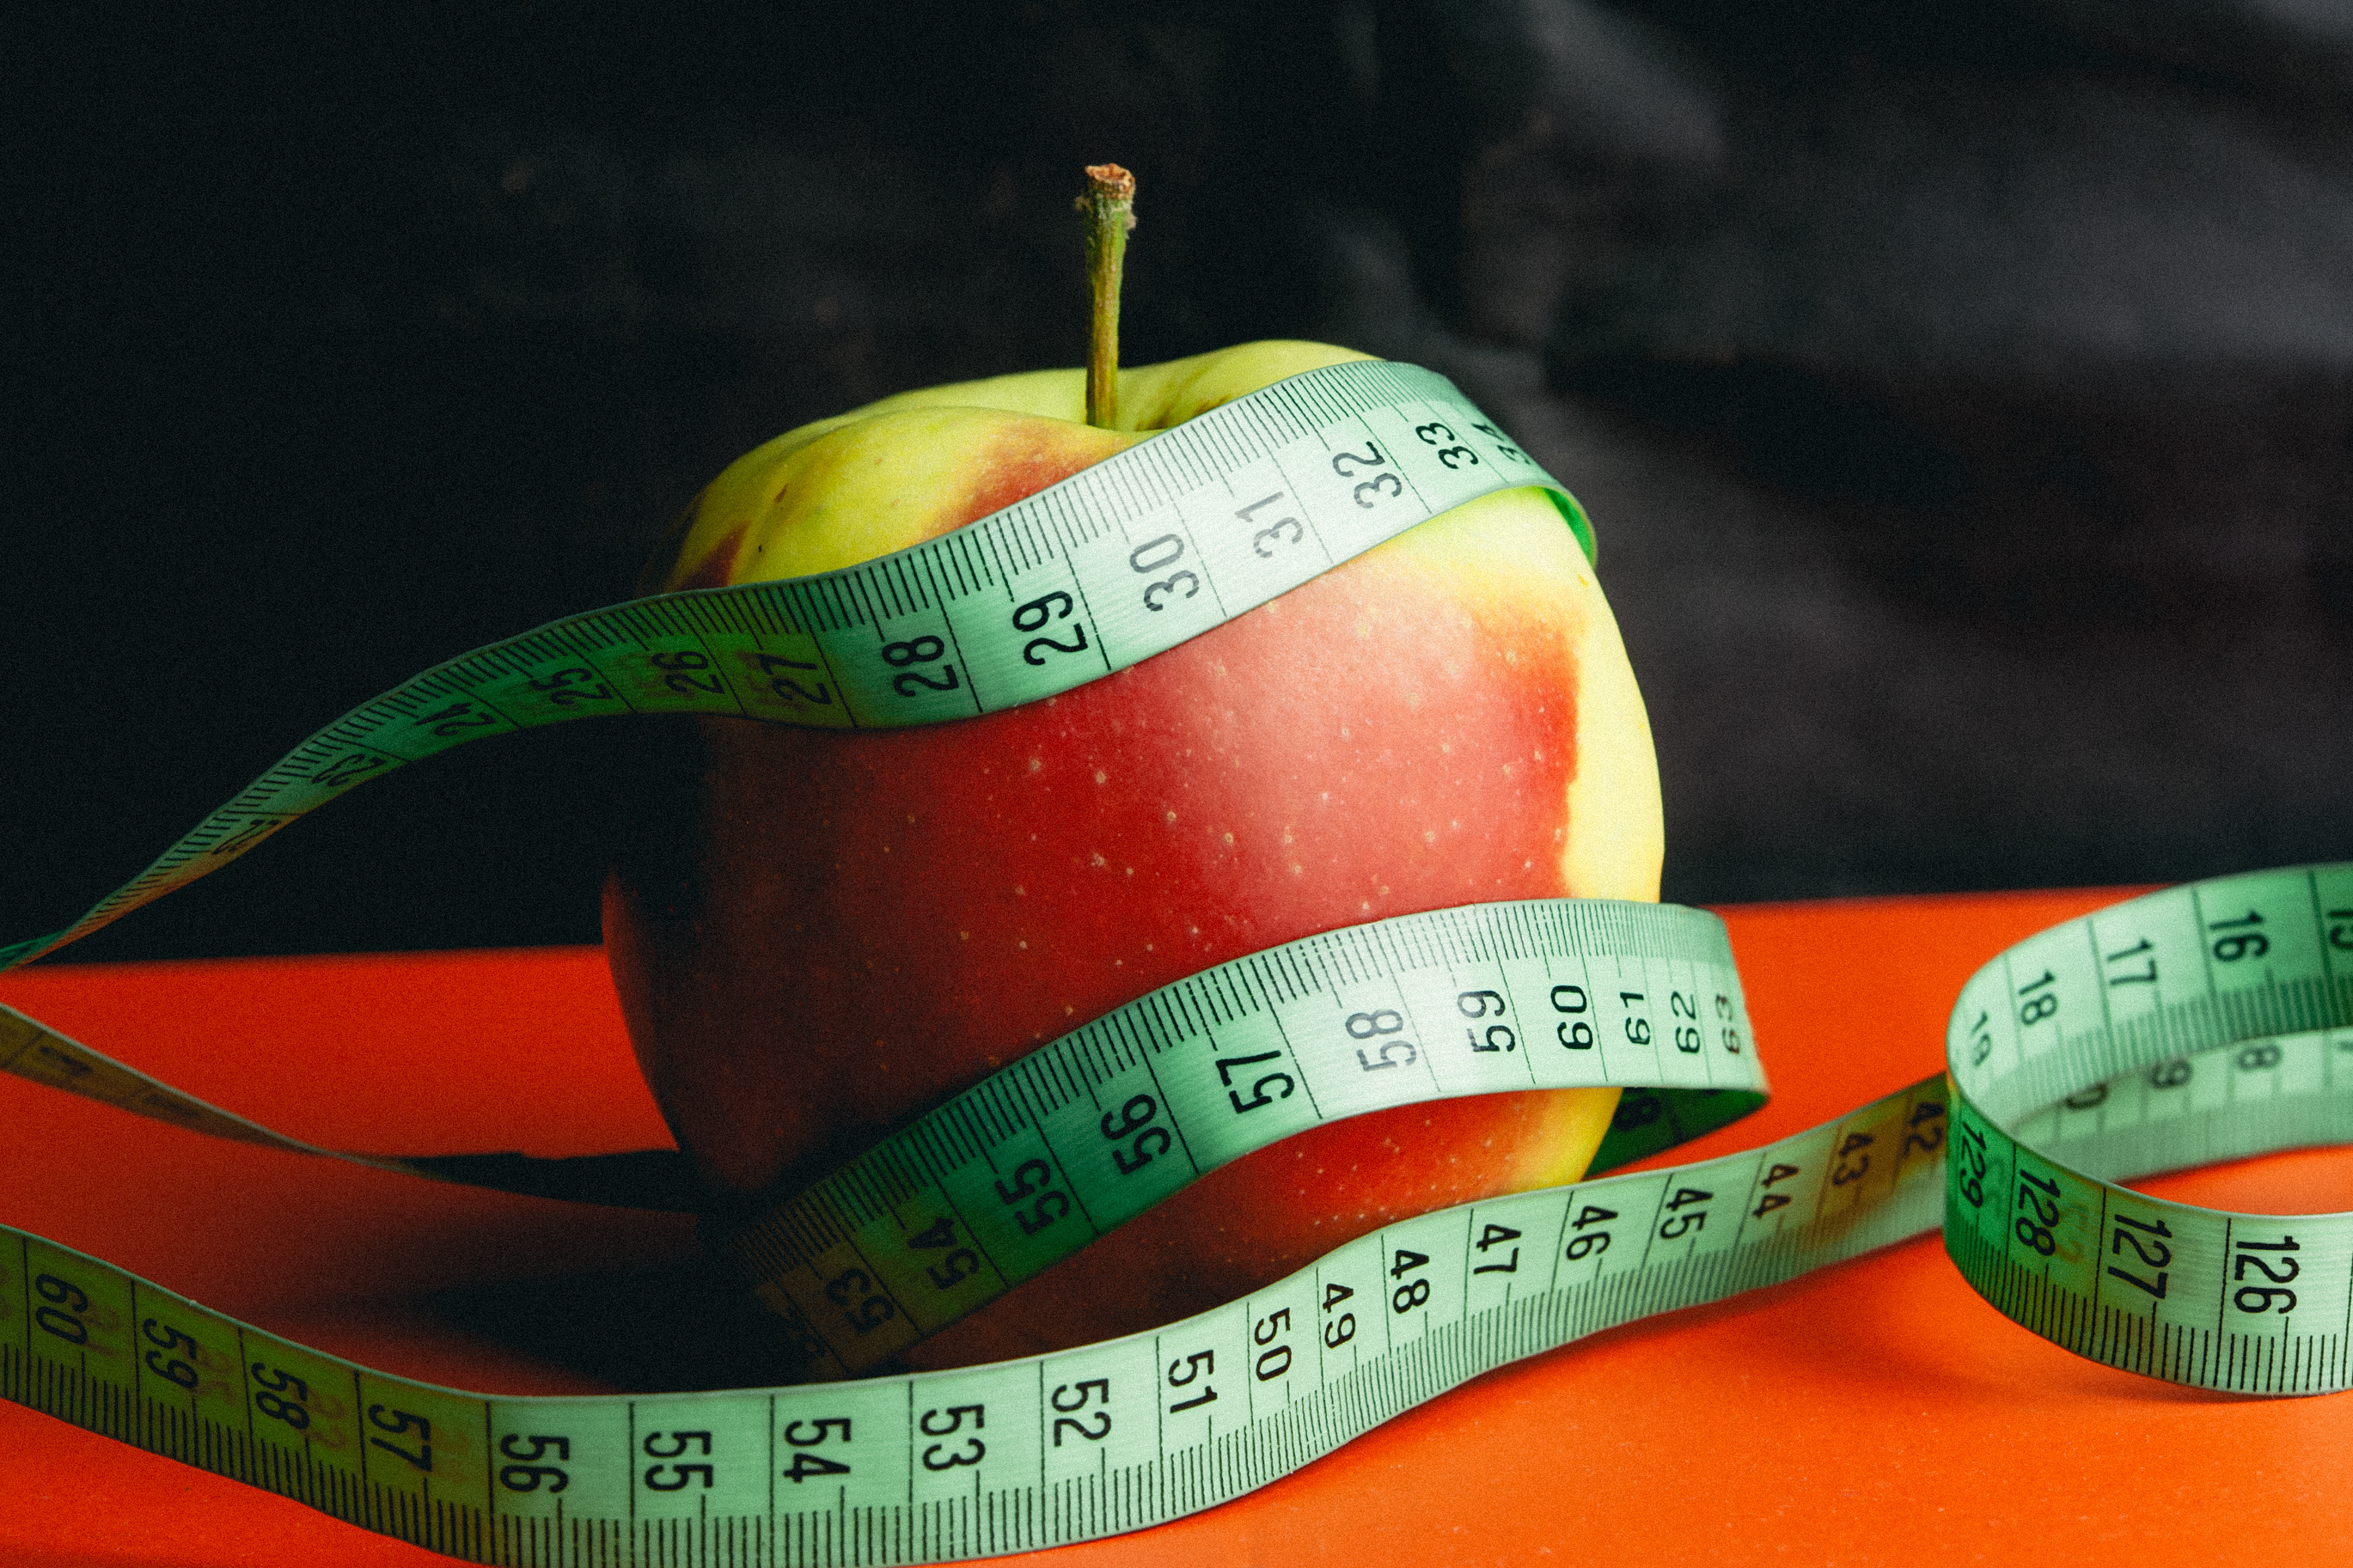 Apple Measure